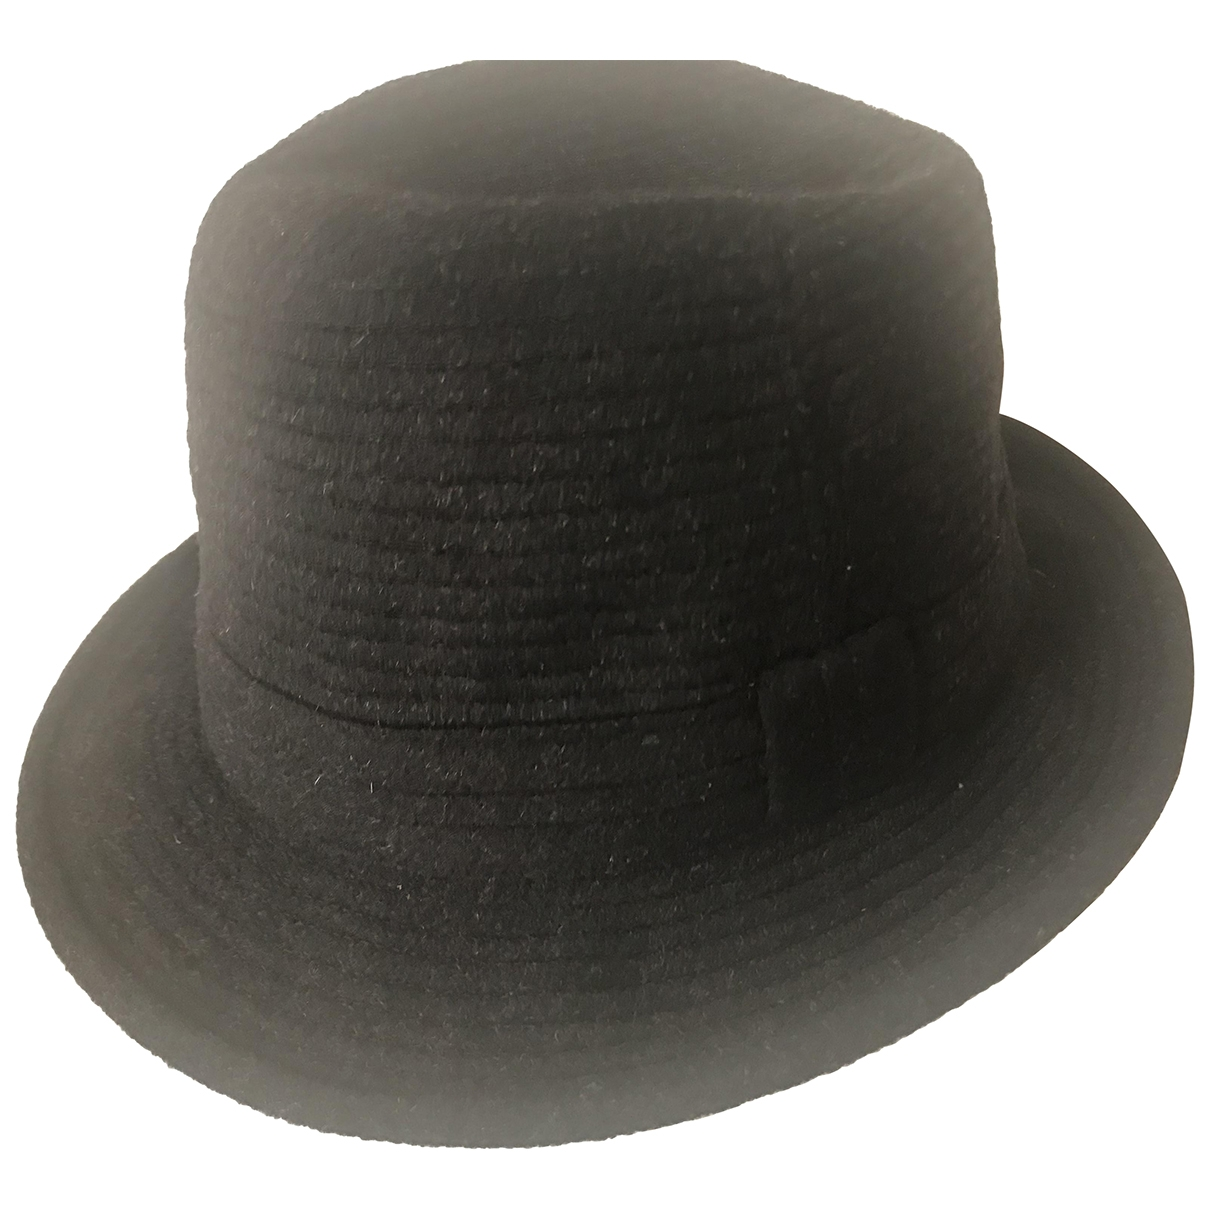 Borsalino \N Black hat for Women 58 cm